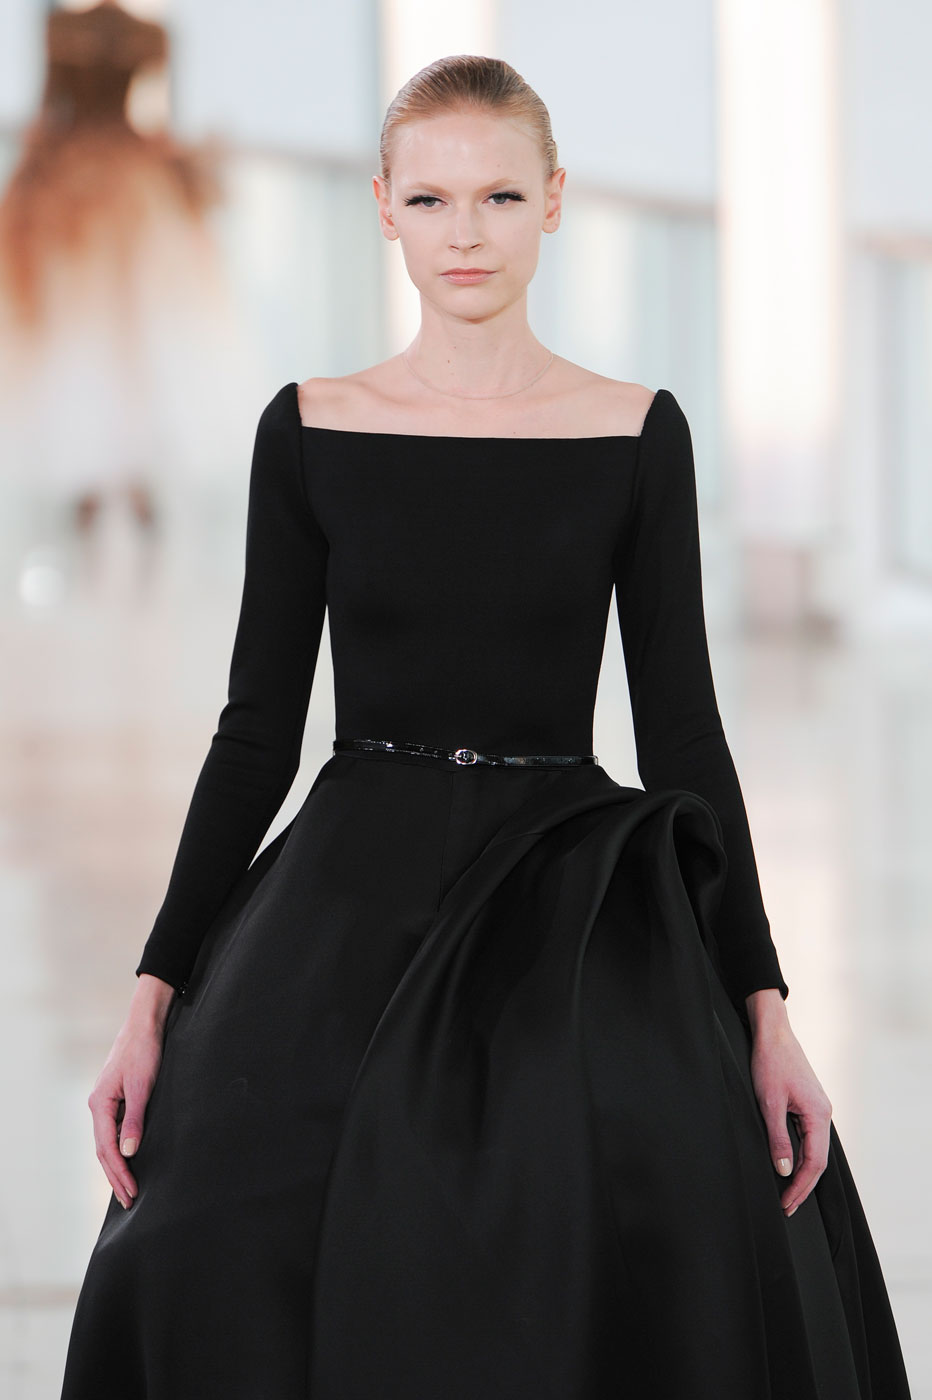 stephane-rolland-fashion-runway-show-haute-couture-paris-spring-2015-the-impression-08